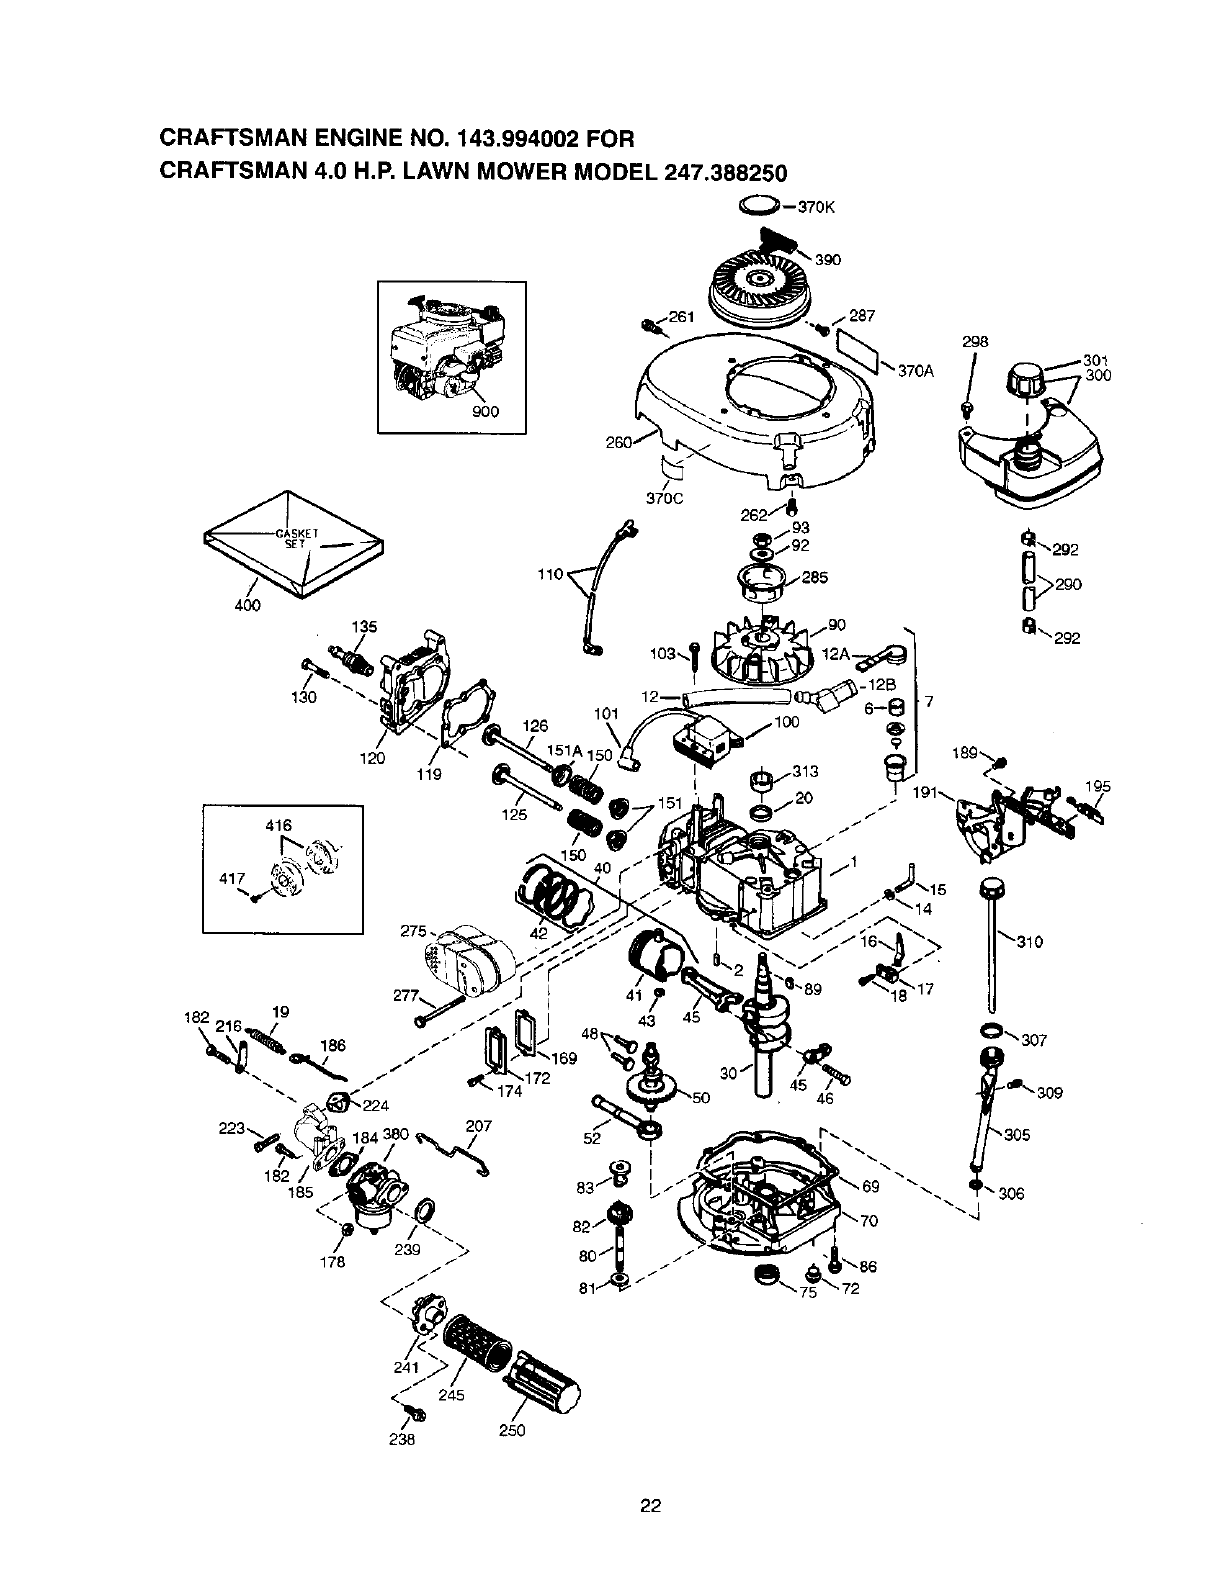 Page 22 of Craftsman Lawn Mower 247.388250 User Guide